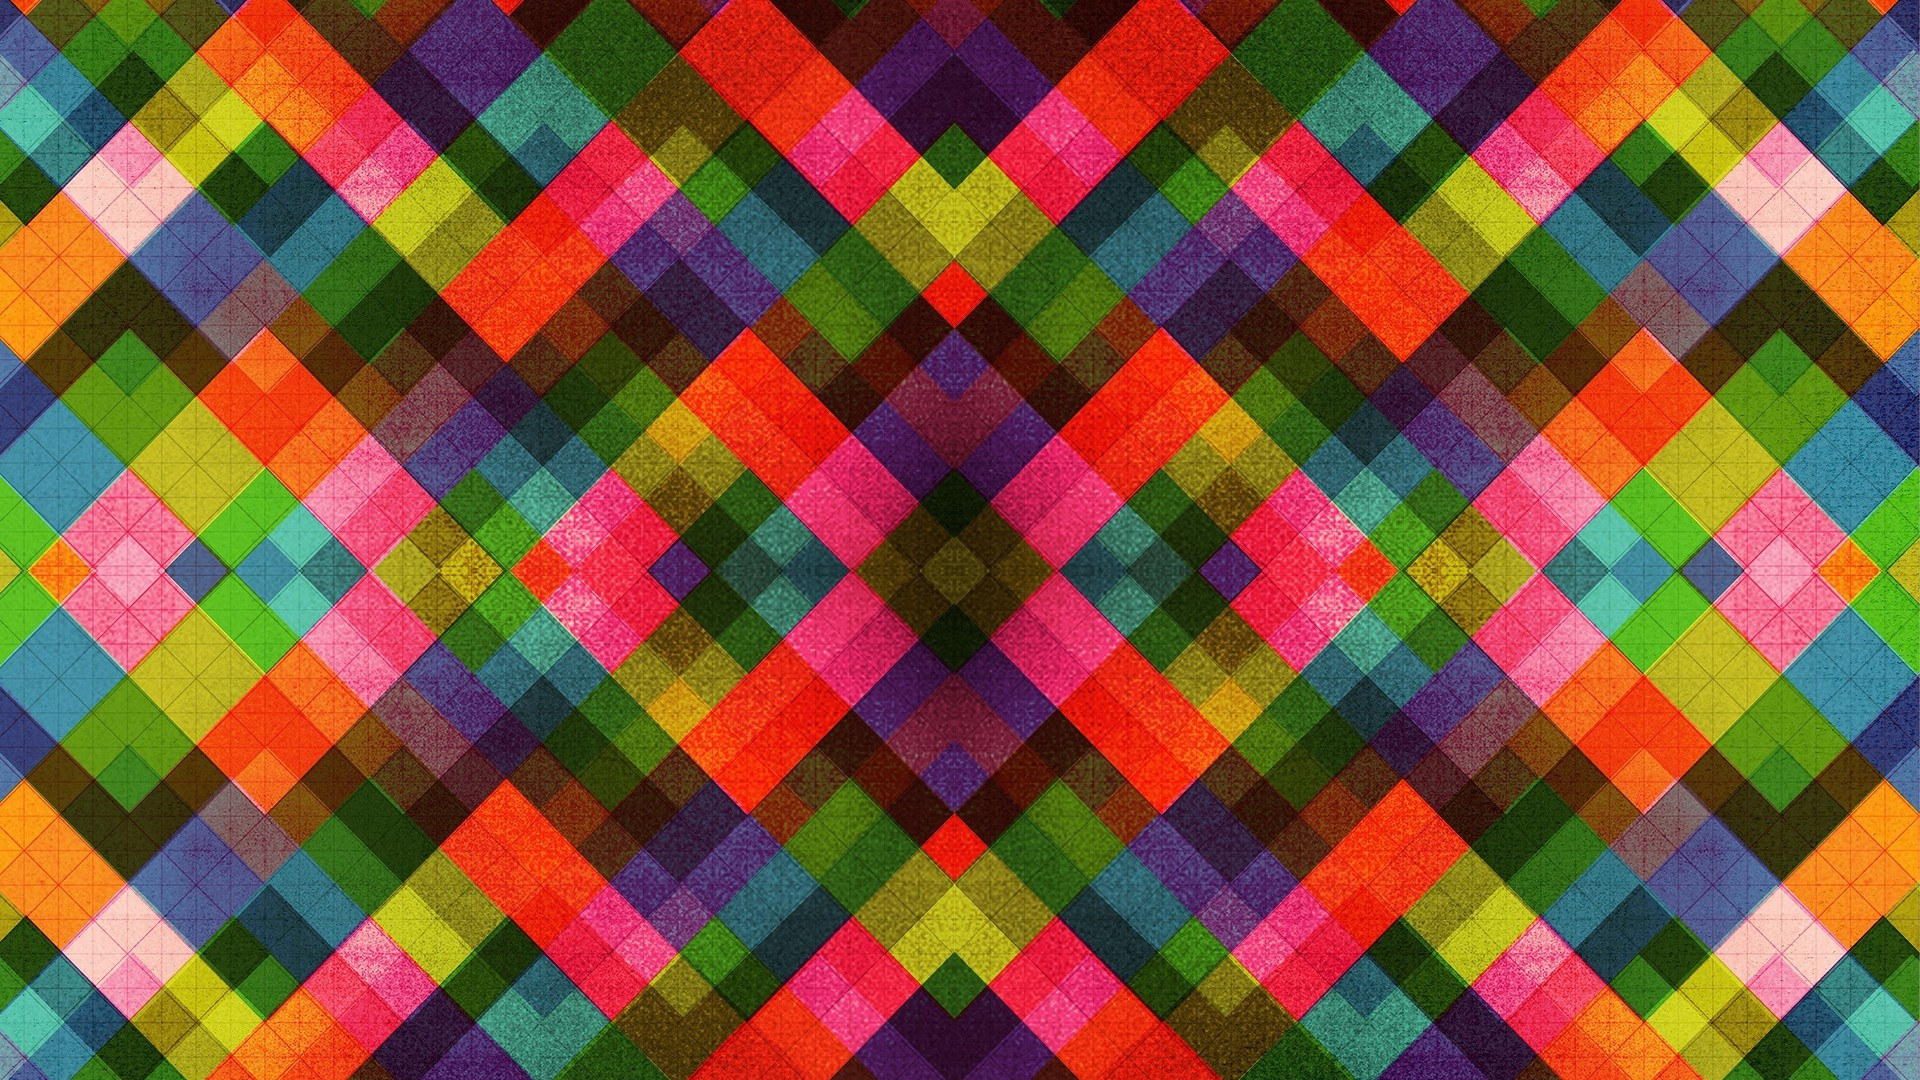 Pattern Images Wallpapers (20 Wallpapers) – Adorable Wallpapers